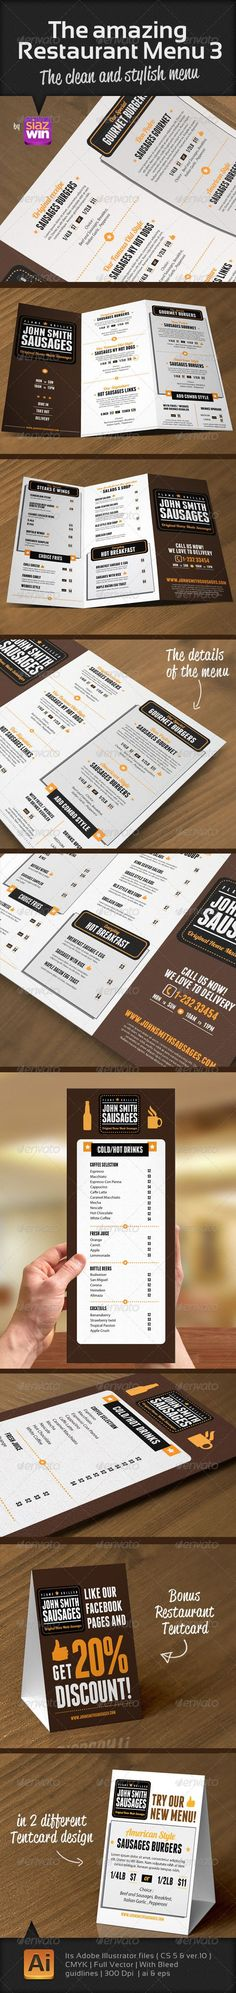 Print Templates - The Amazing Restaurant Menu 3 | GraphicRiver